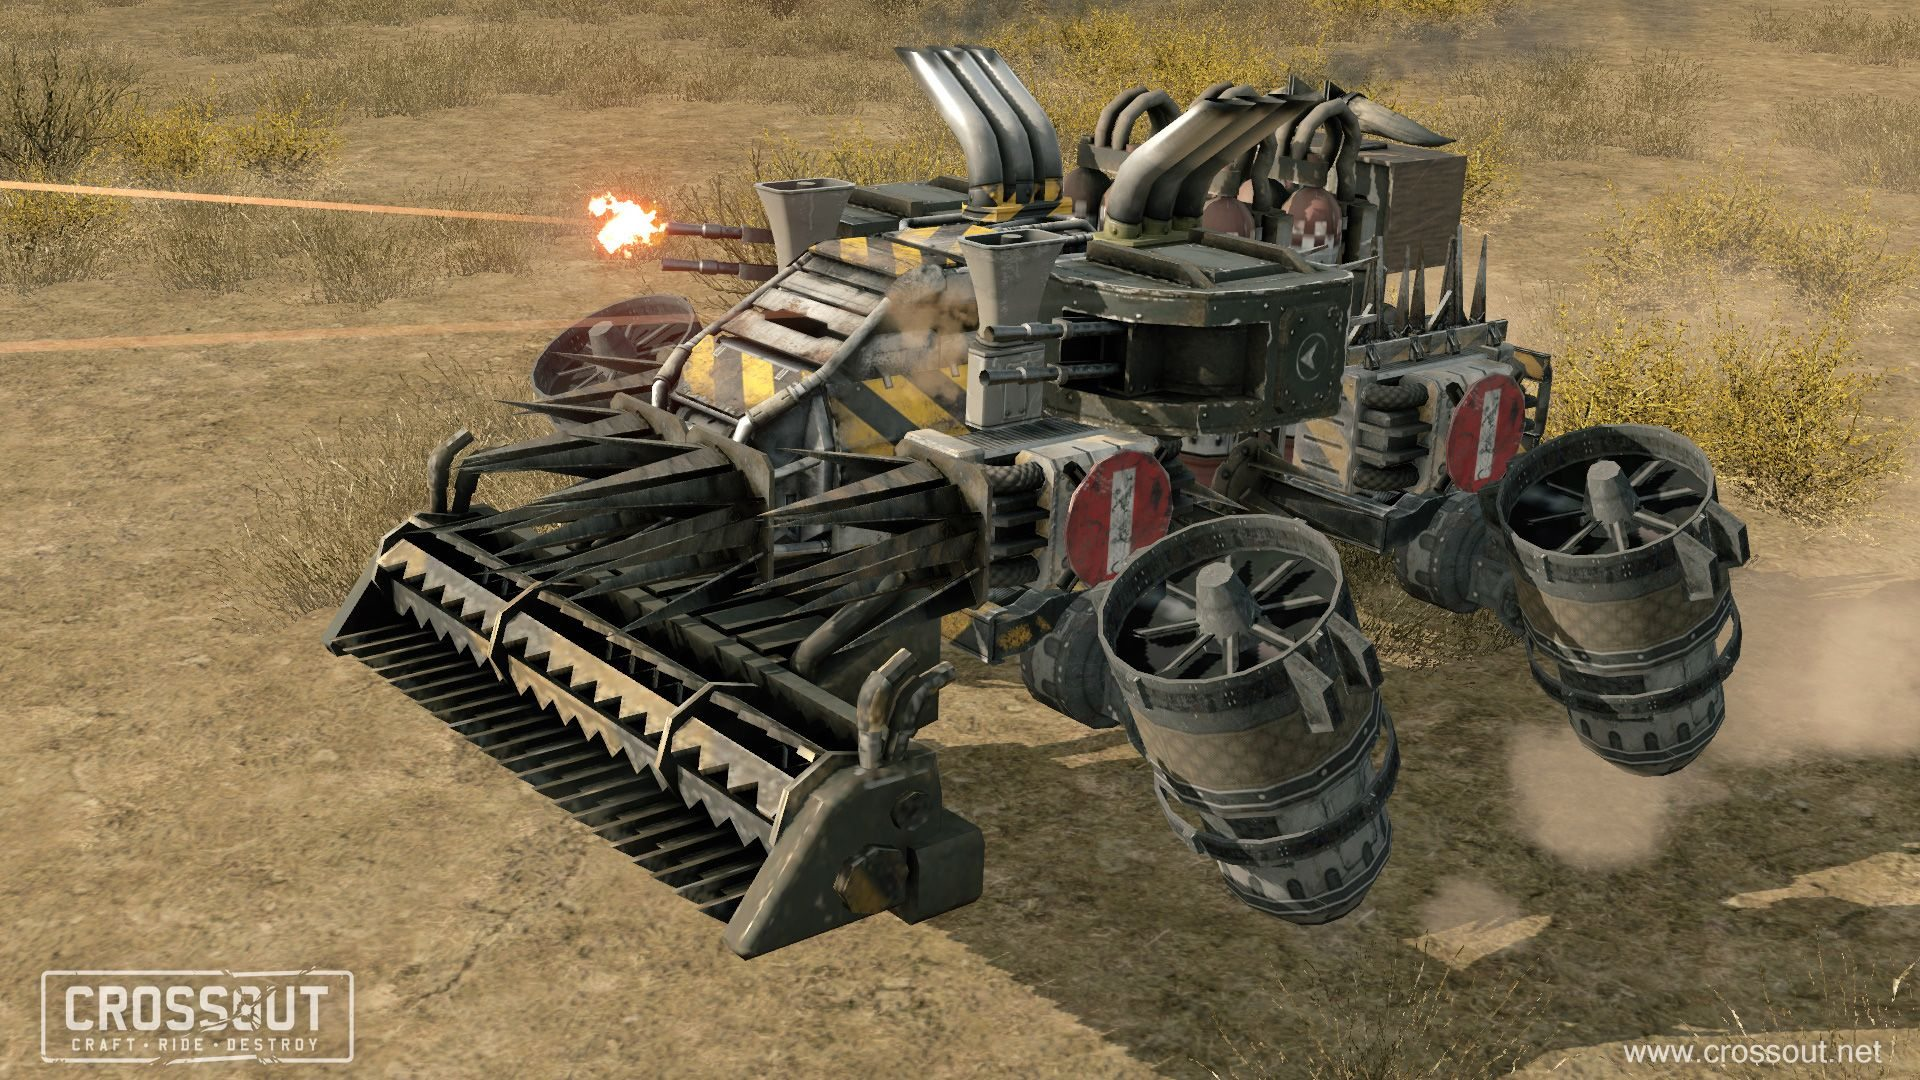 Crossout_screenshot_2_hovers